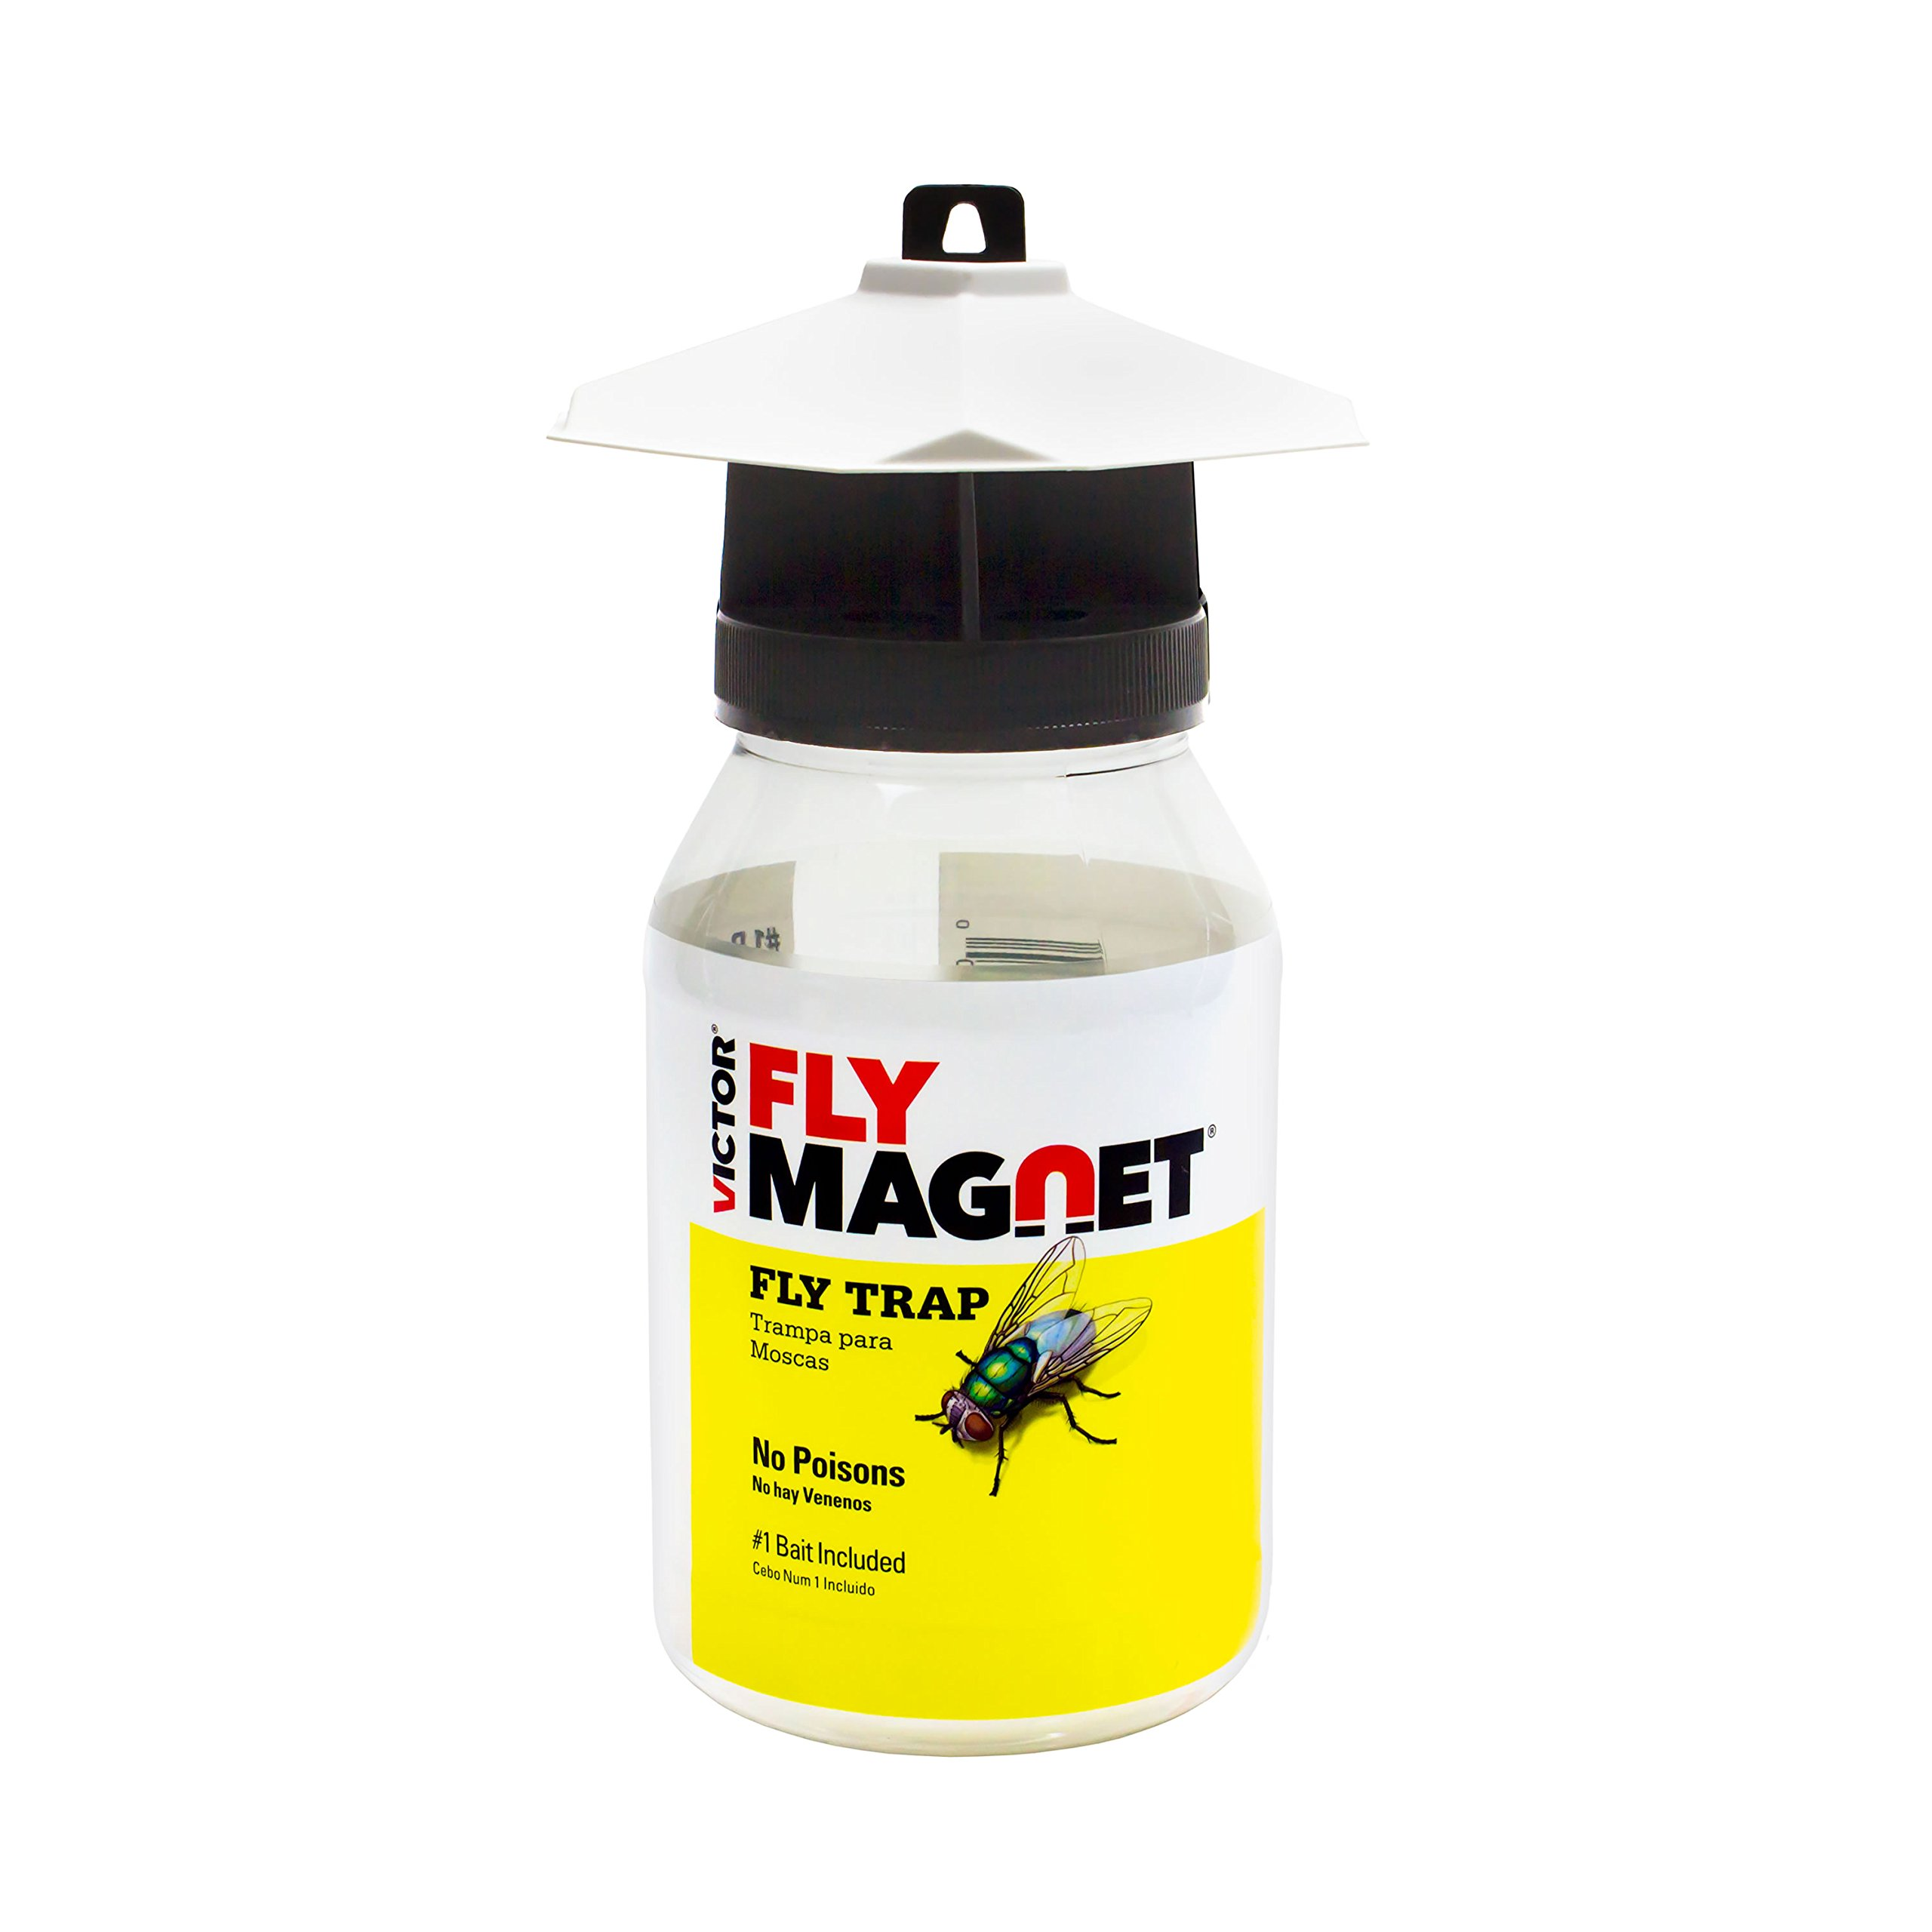 Victor M380 Fly Magnet Reusable Trap with Bait by Safer Brand